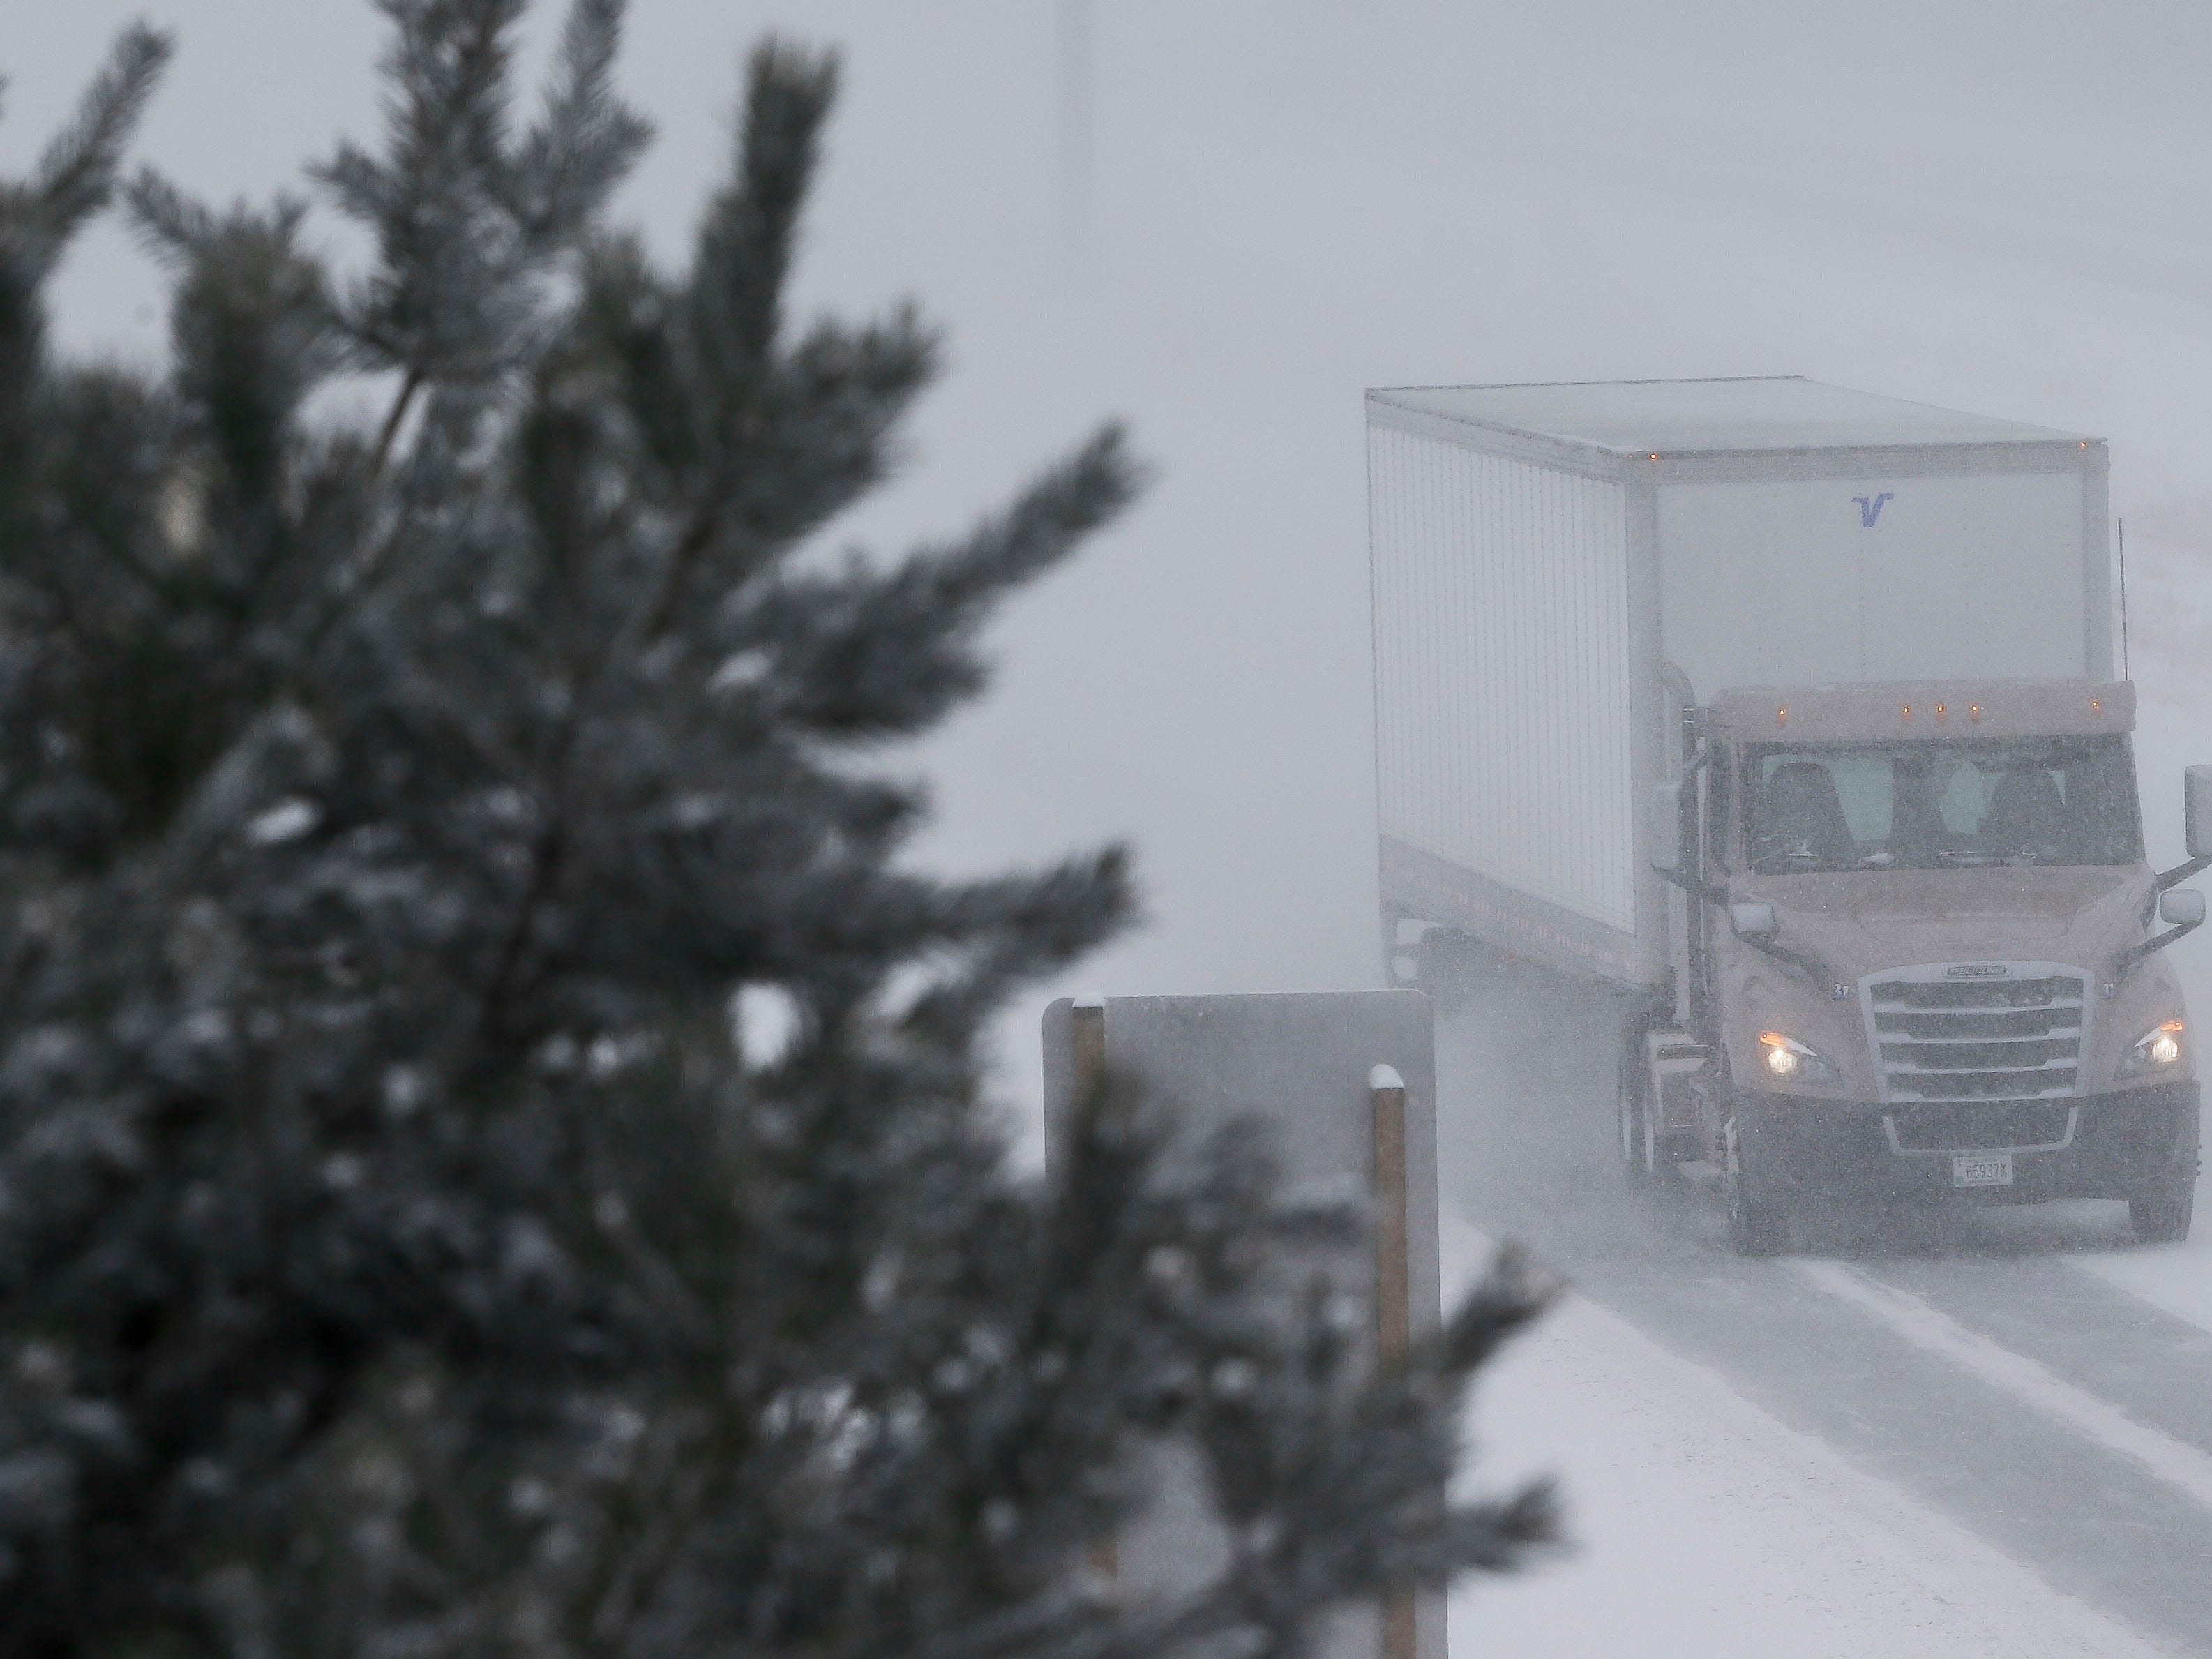 A semi truck heads north through whiteout conditions on Thursday, February 7, 2019, on Interstate 39 in Stevens Point, Wis. A winter storm is expected to drop 5-8 inches of snow in the area by the time it clears Thursday evening.